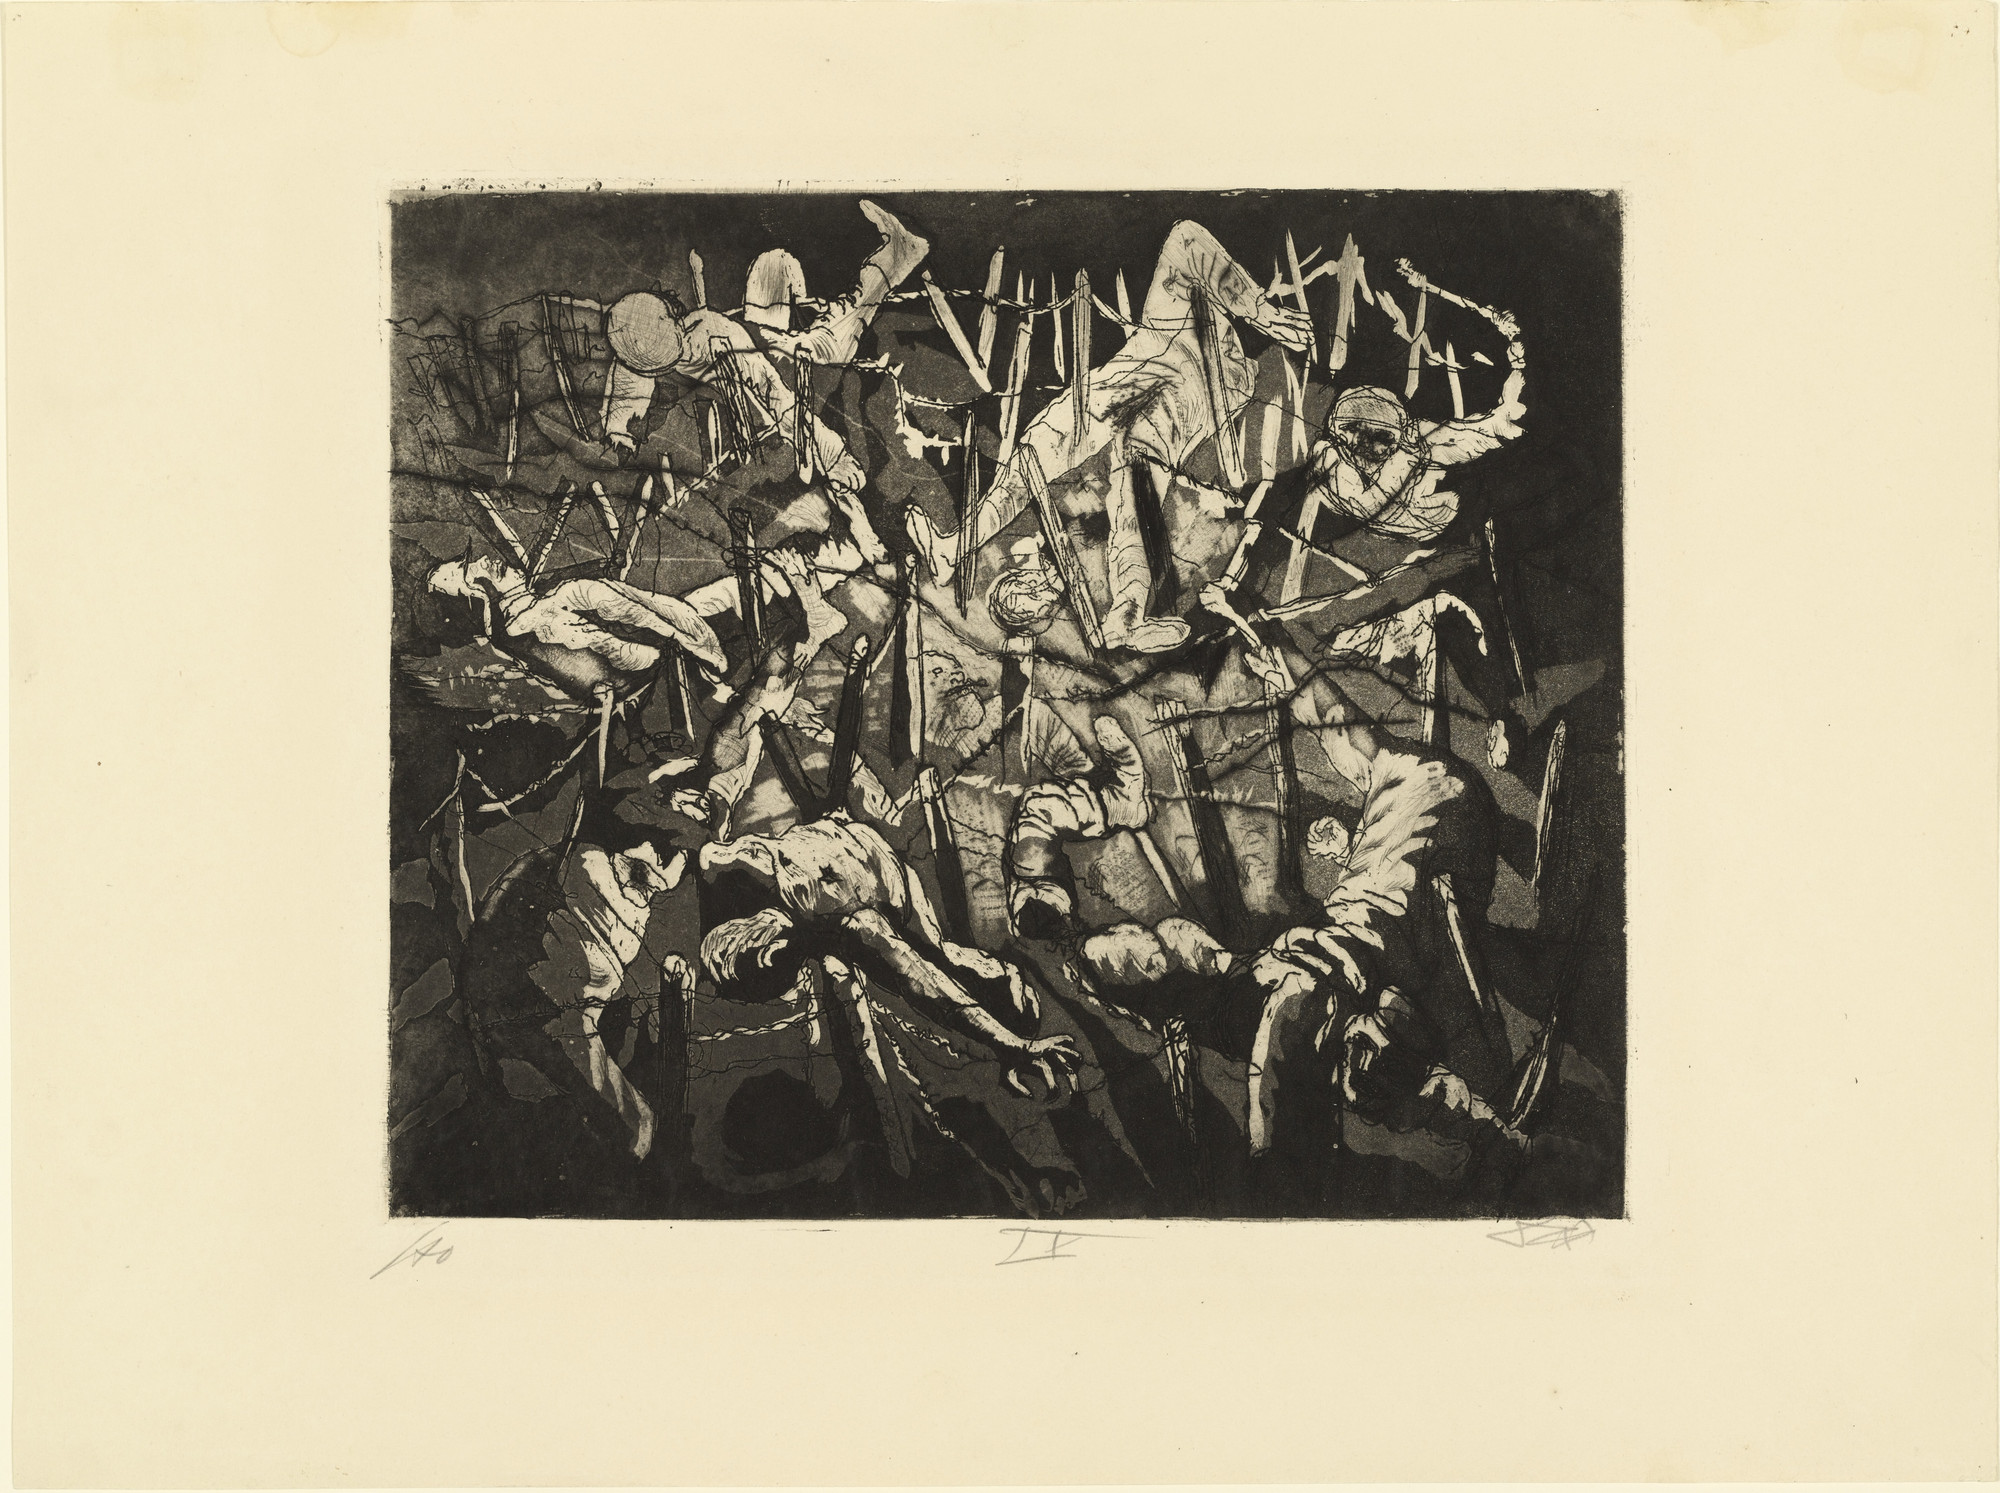 Otto Dix. Dance of Death 1917 (Dead Man Heights) (Totentanz anno 17 [Höhe Toter Mann]) from The War (Der Krieg). 1924